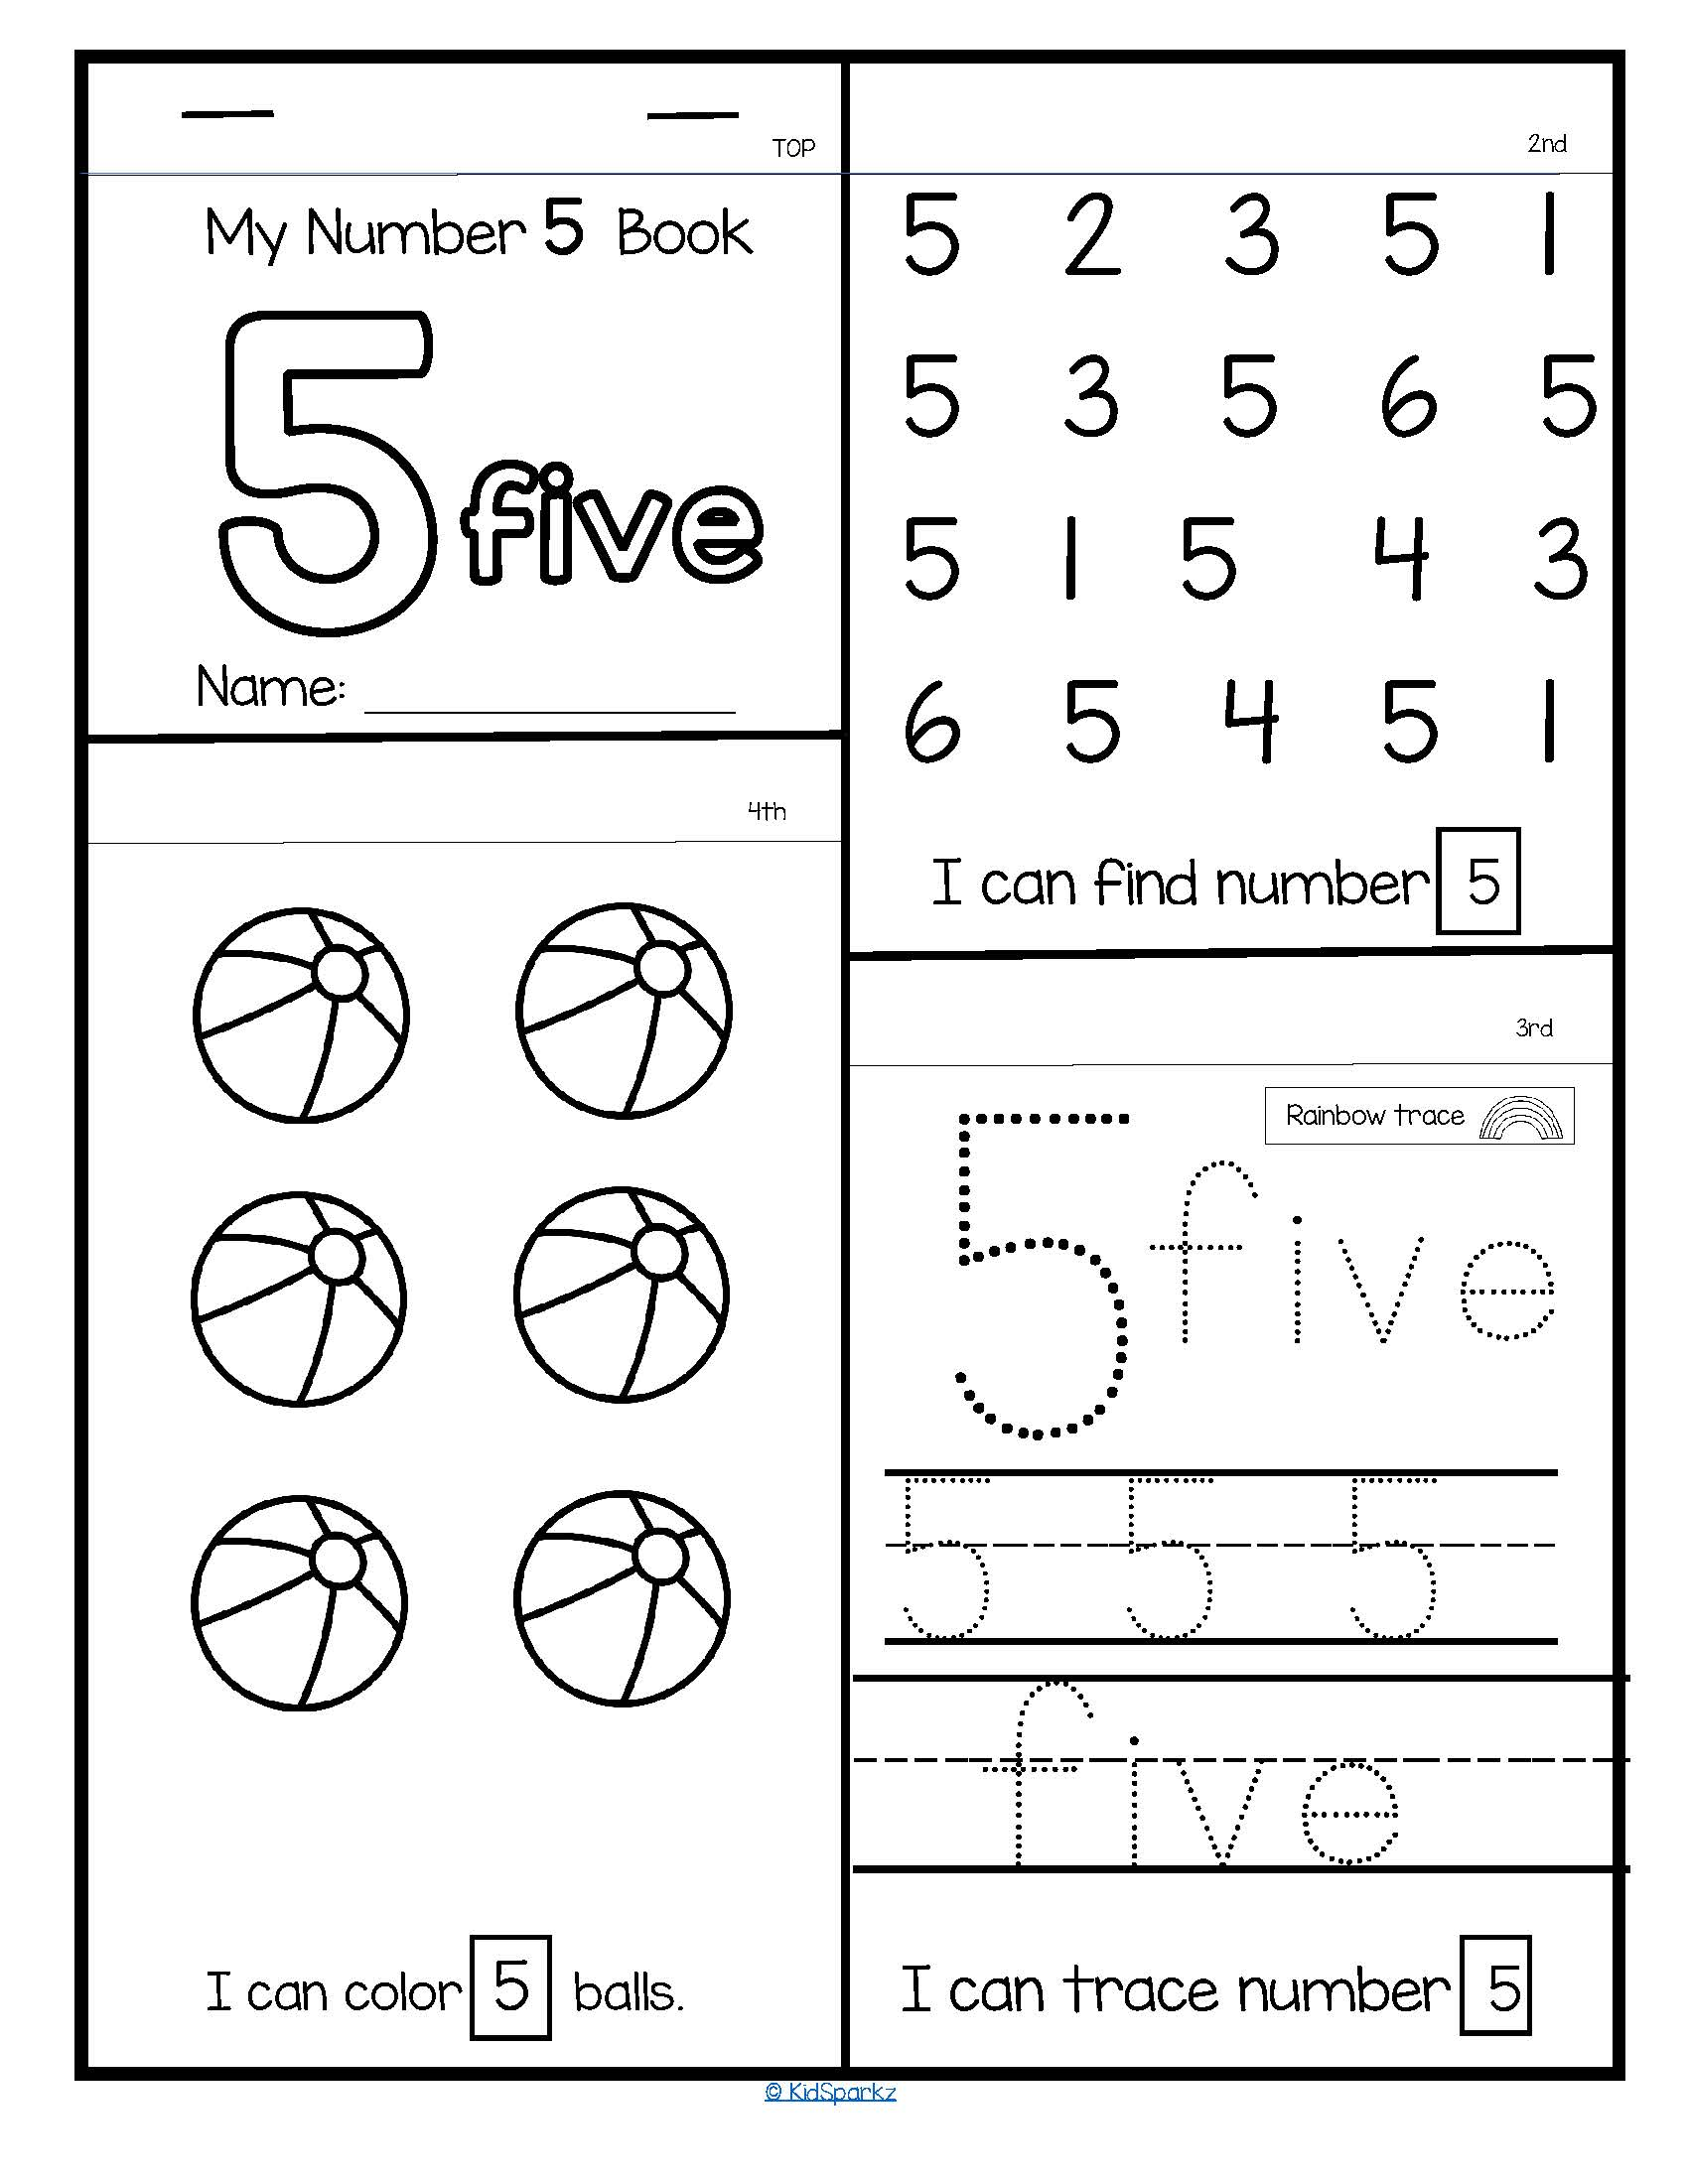 20 Numbers Flip Flap Books